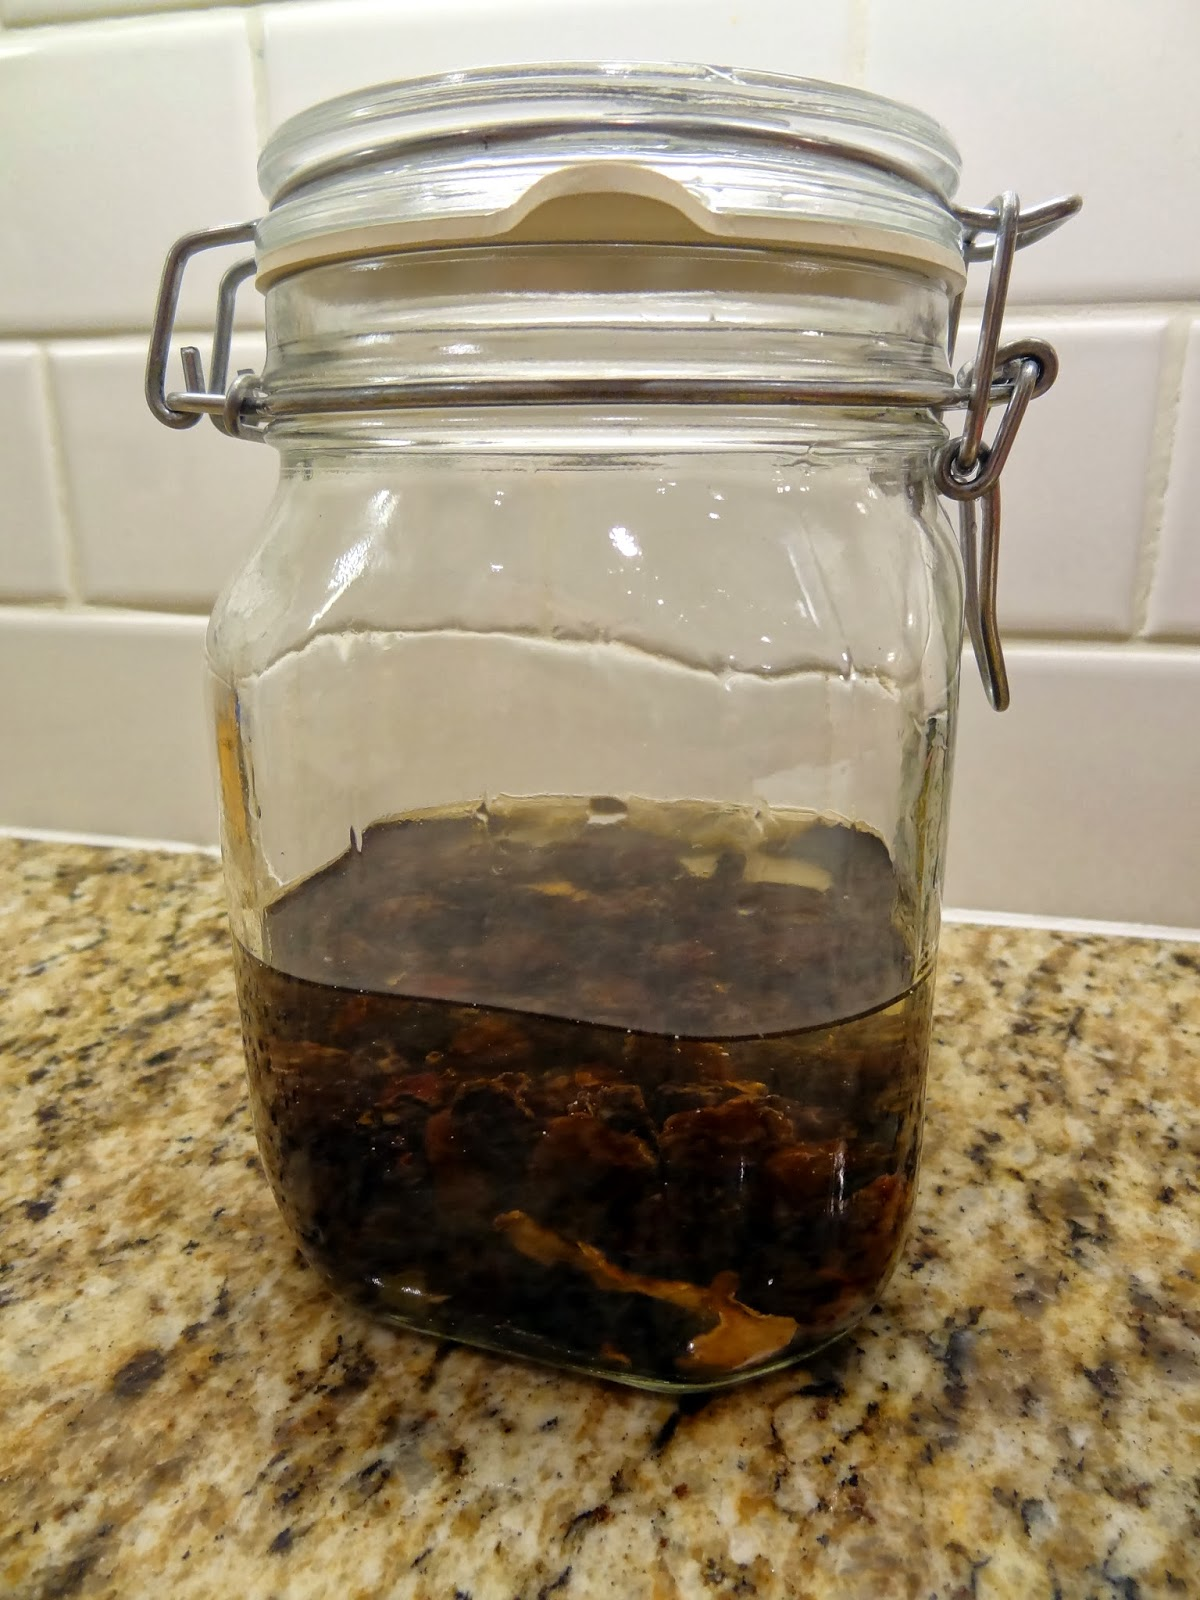 The Food Method: How to Create Your Own Glögg Recipe